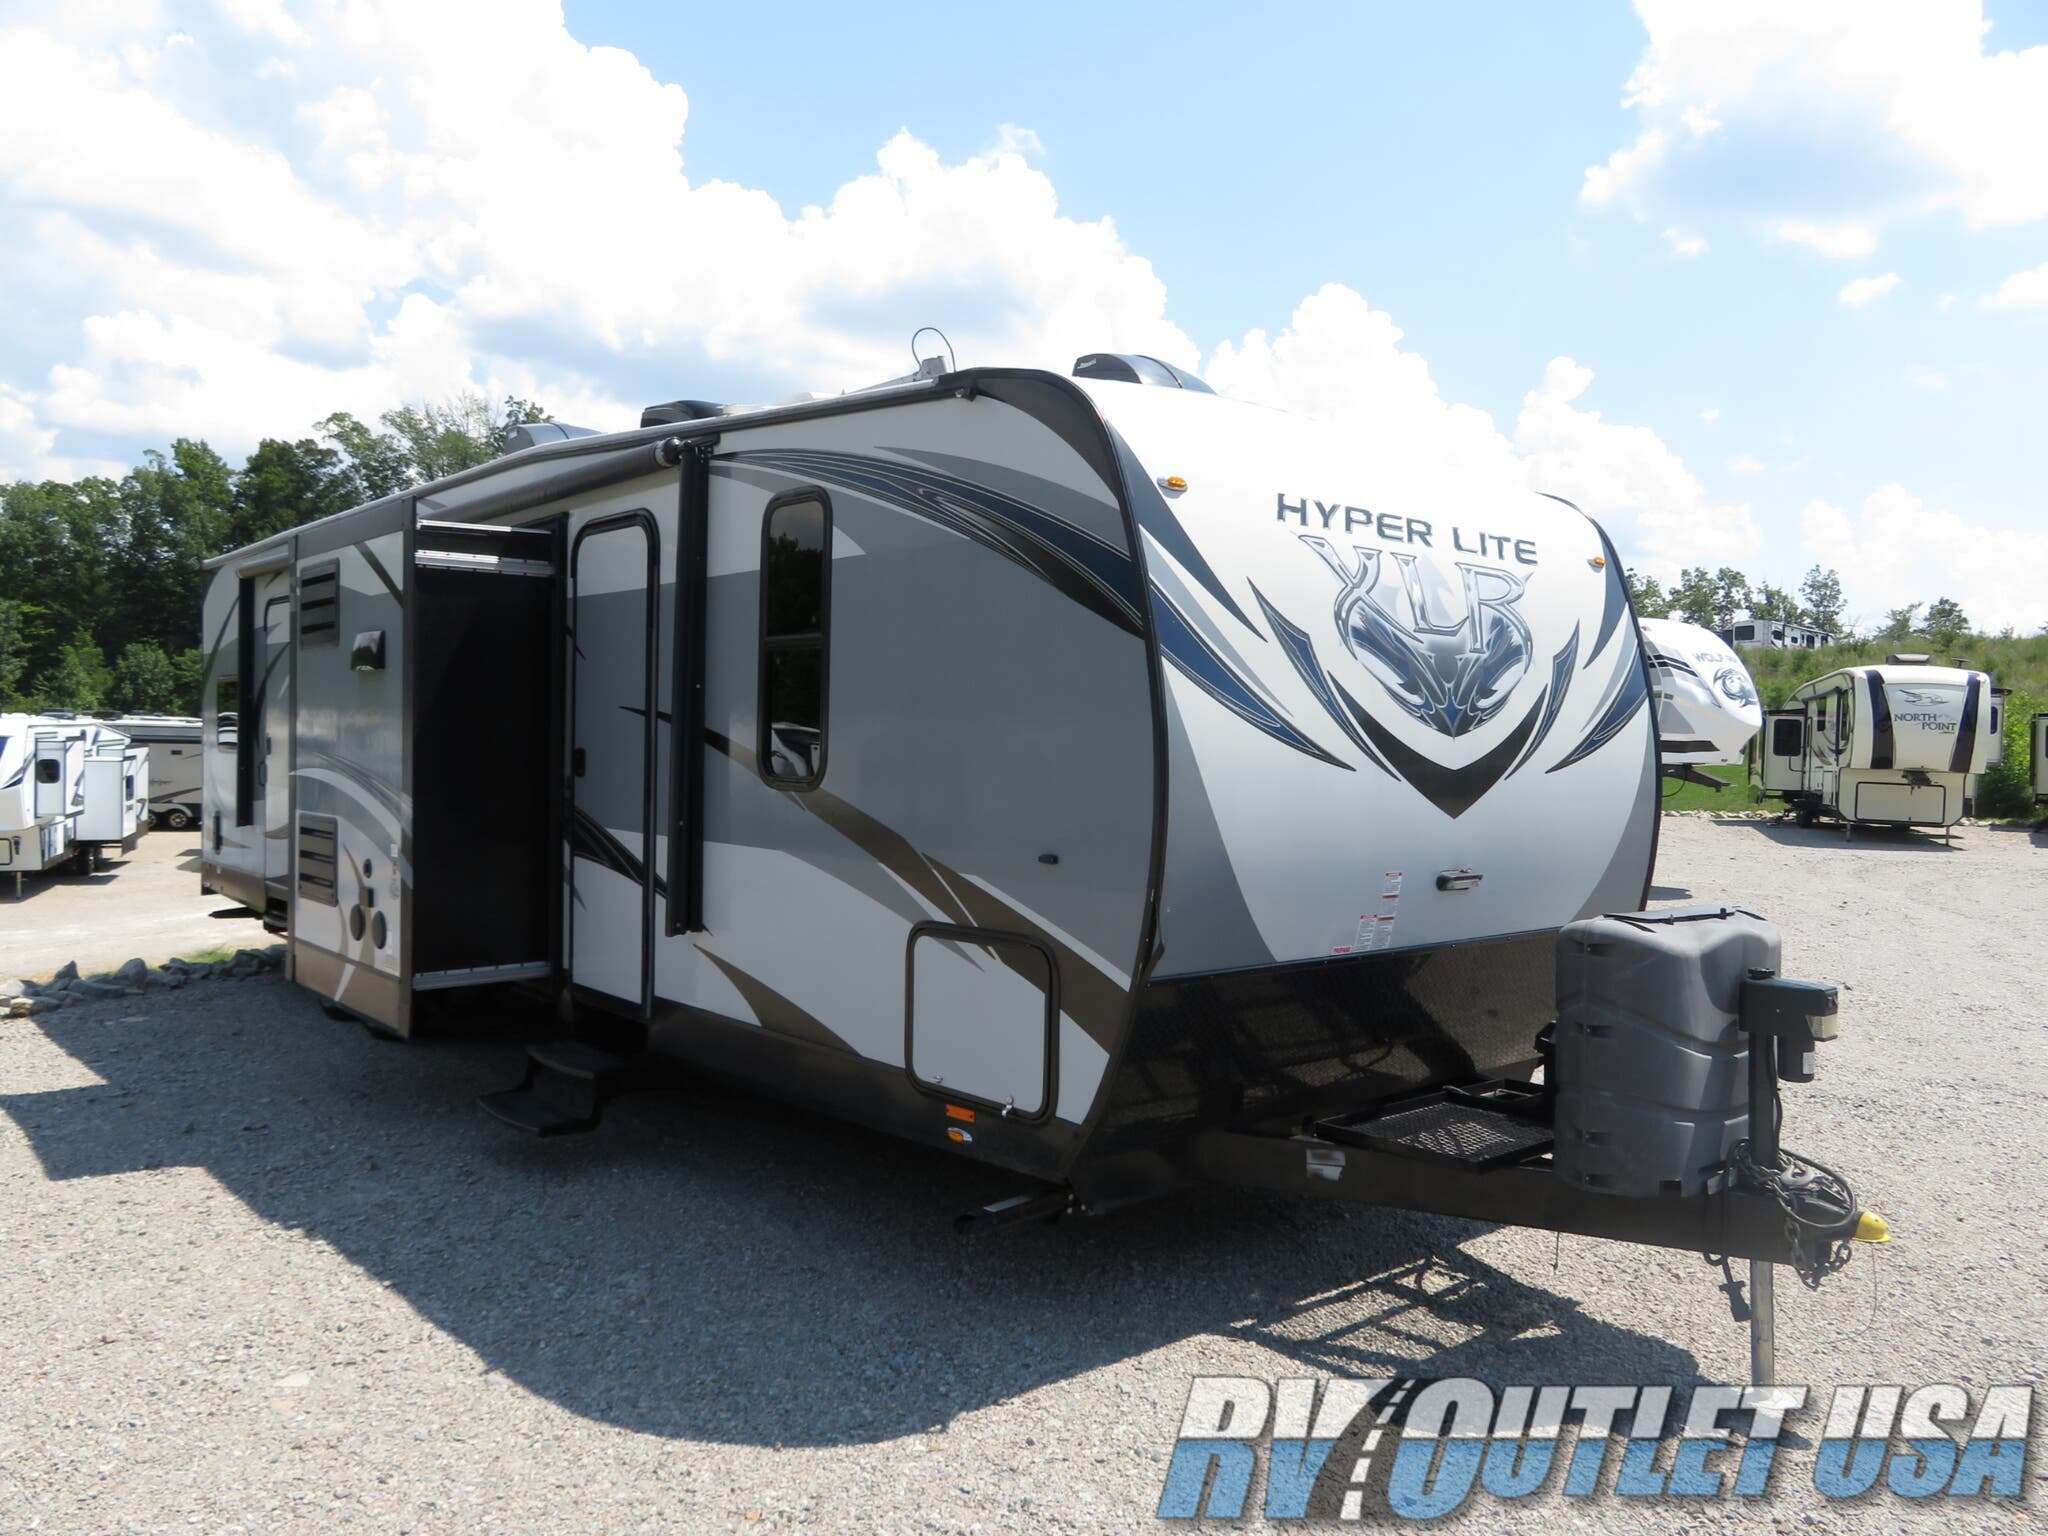 Photo 2015 Forest River XLR Hyperlite 30HDS $ 19950  Make an Offer